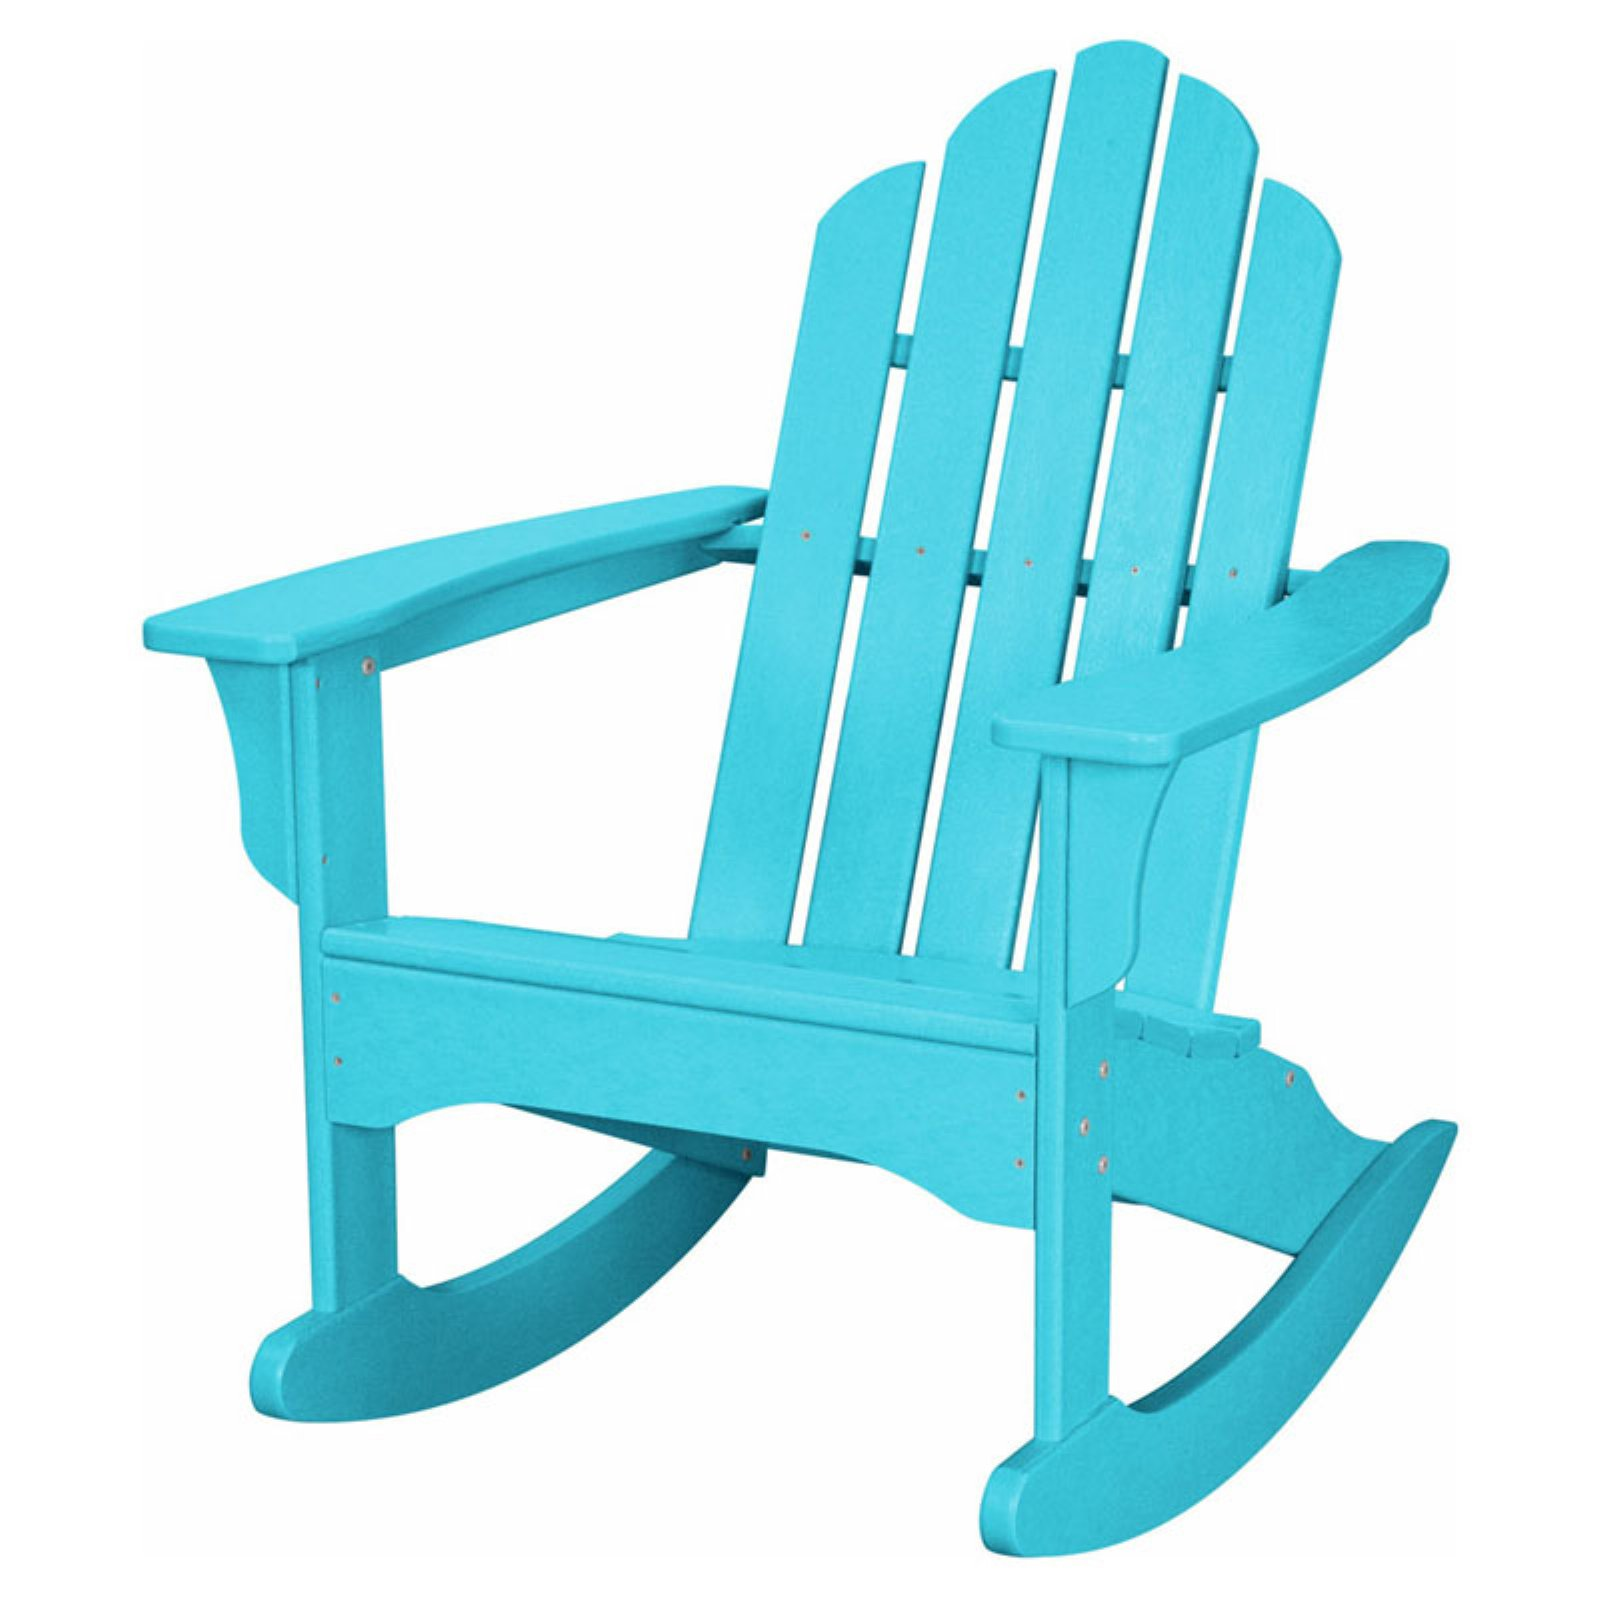 Hanover Outdoor Furniture All-Weather Contoured Adirondack Rocking Chair